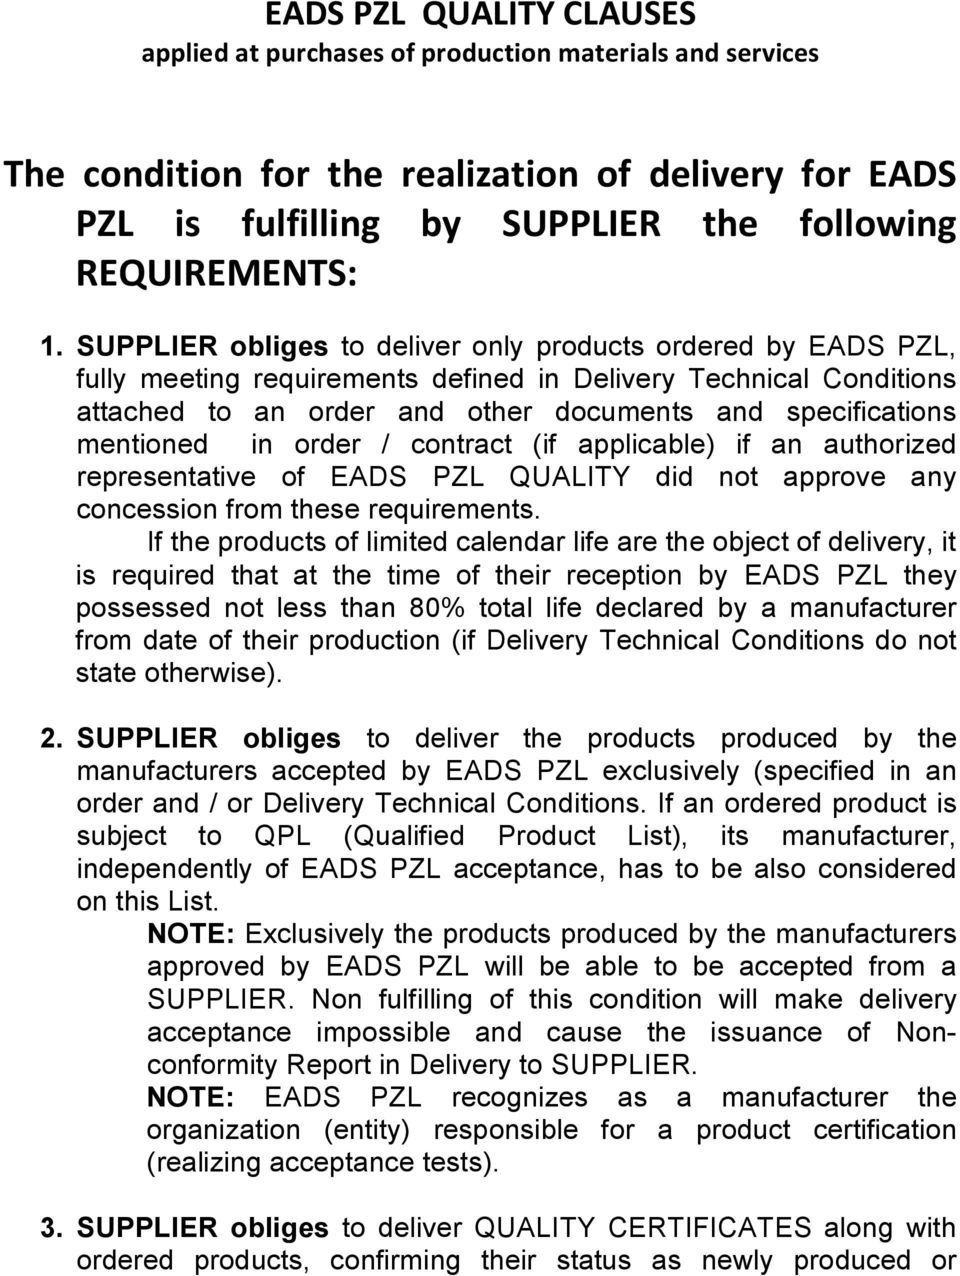 mentioned in order / contract (if applicable) if an authorized representative of EADS PZL QUALITY did not approve any concession from these requirements.